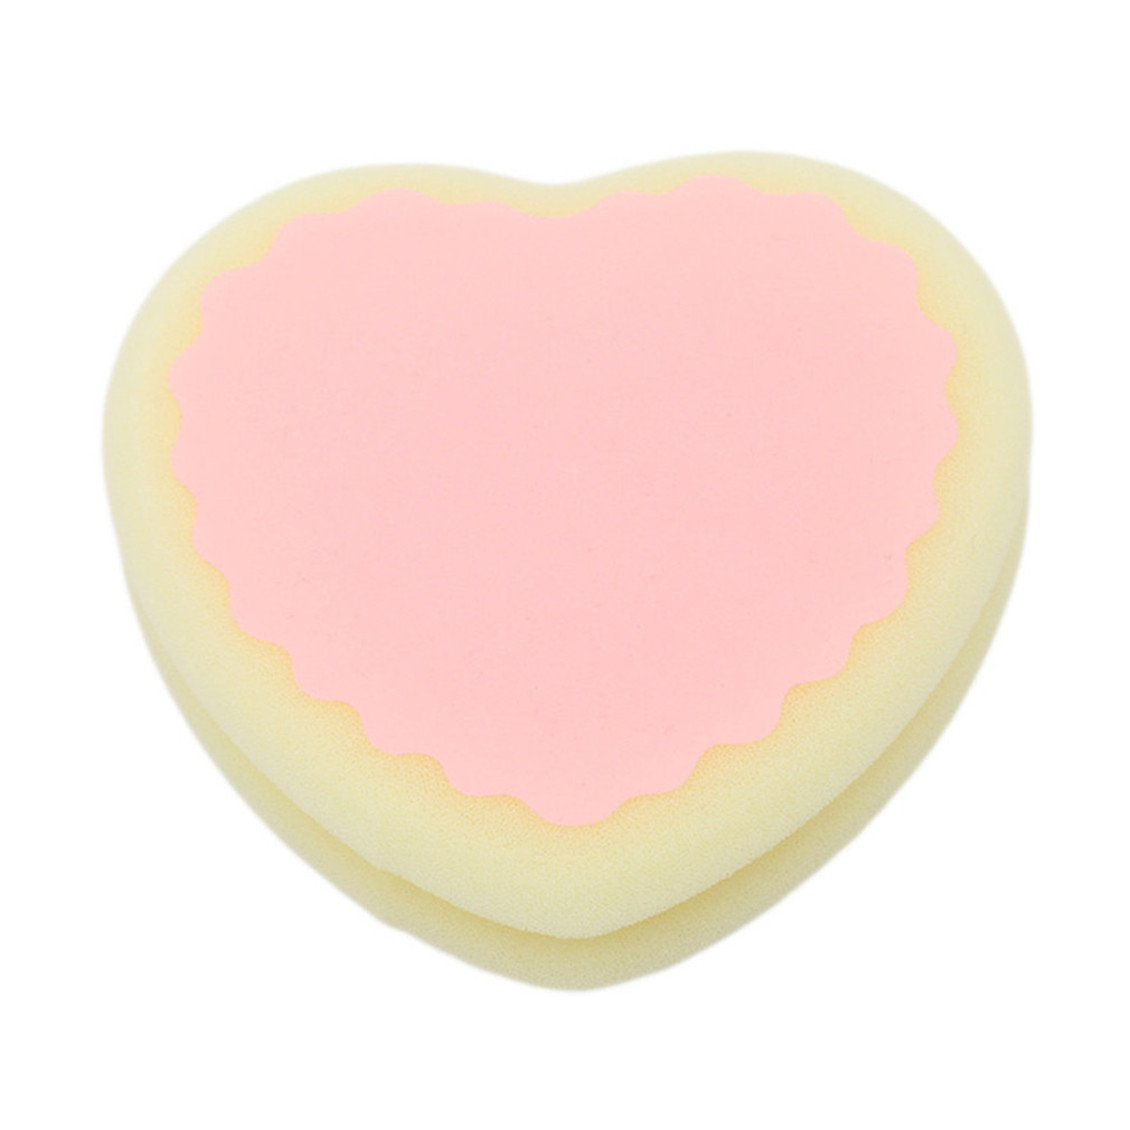 Dolland Magic Painless Hair Removal Depilation Sponge Pad Remove Hair Remover,Yellow Love9.5*10*2.5cm